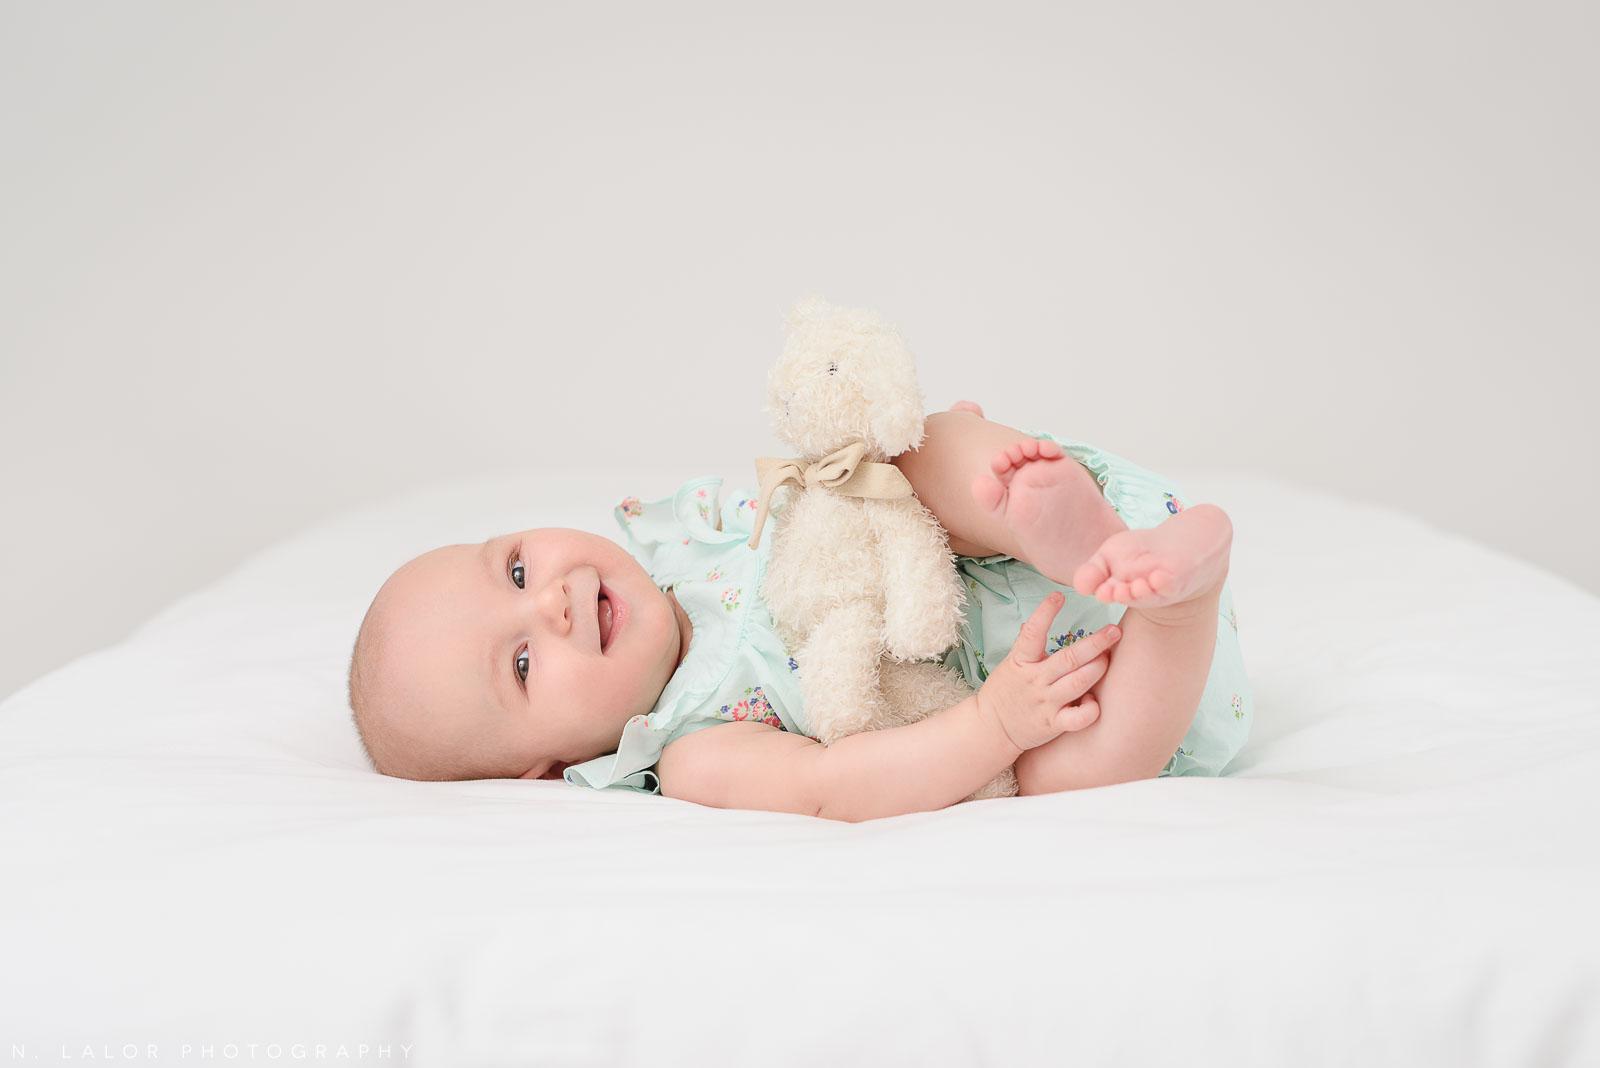 Playing with her favorite toy. Studio baby milestone session with N. Lalor Photography in Greenwich, Connecticut.